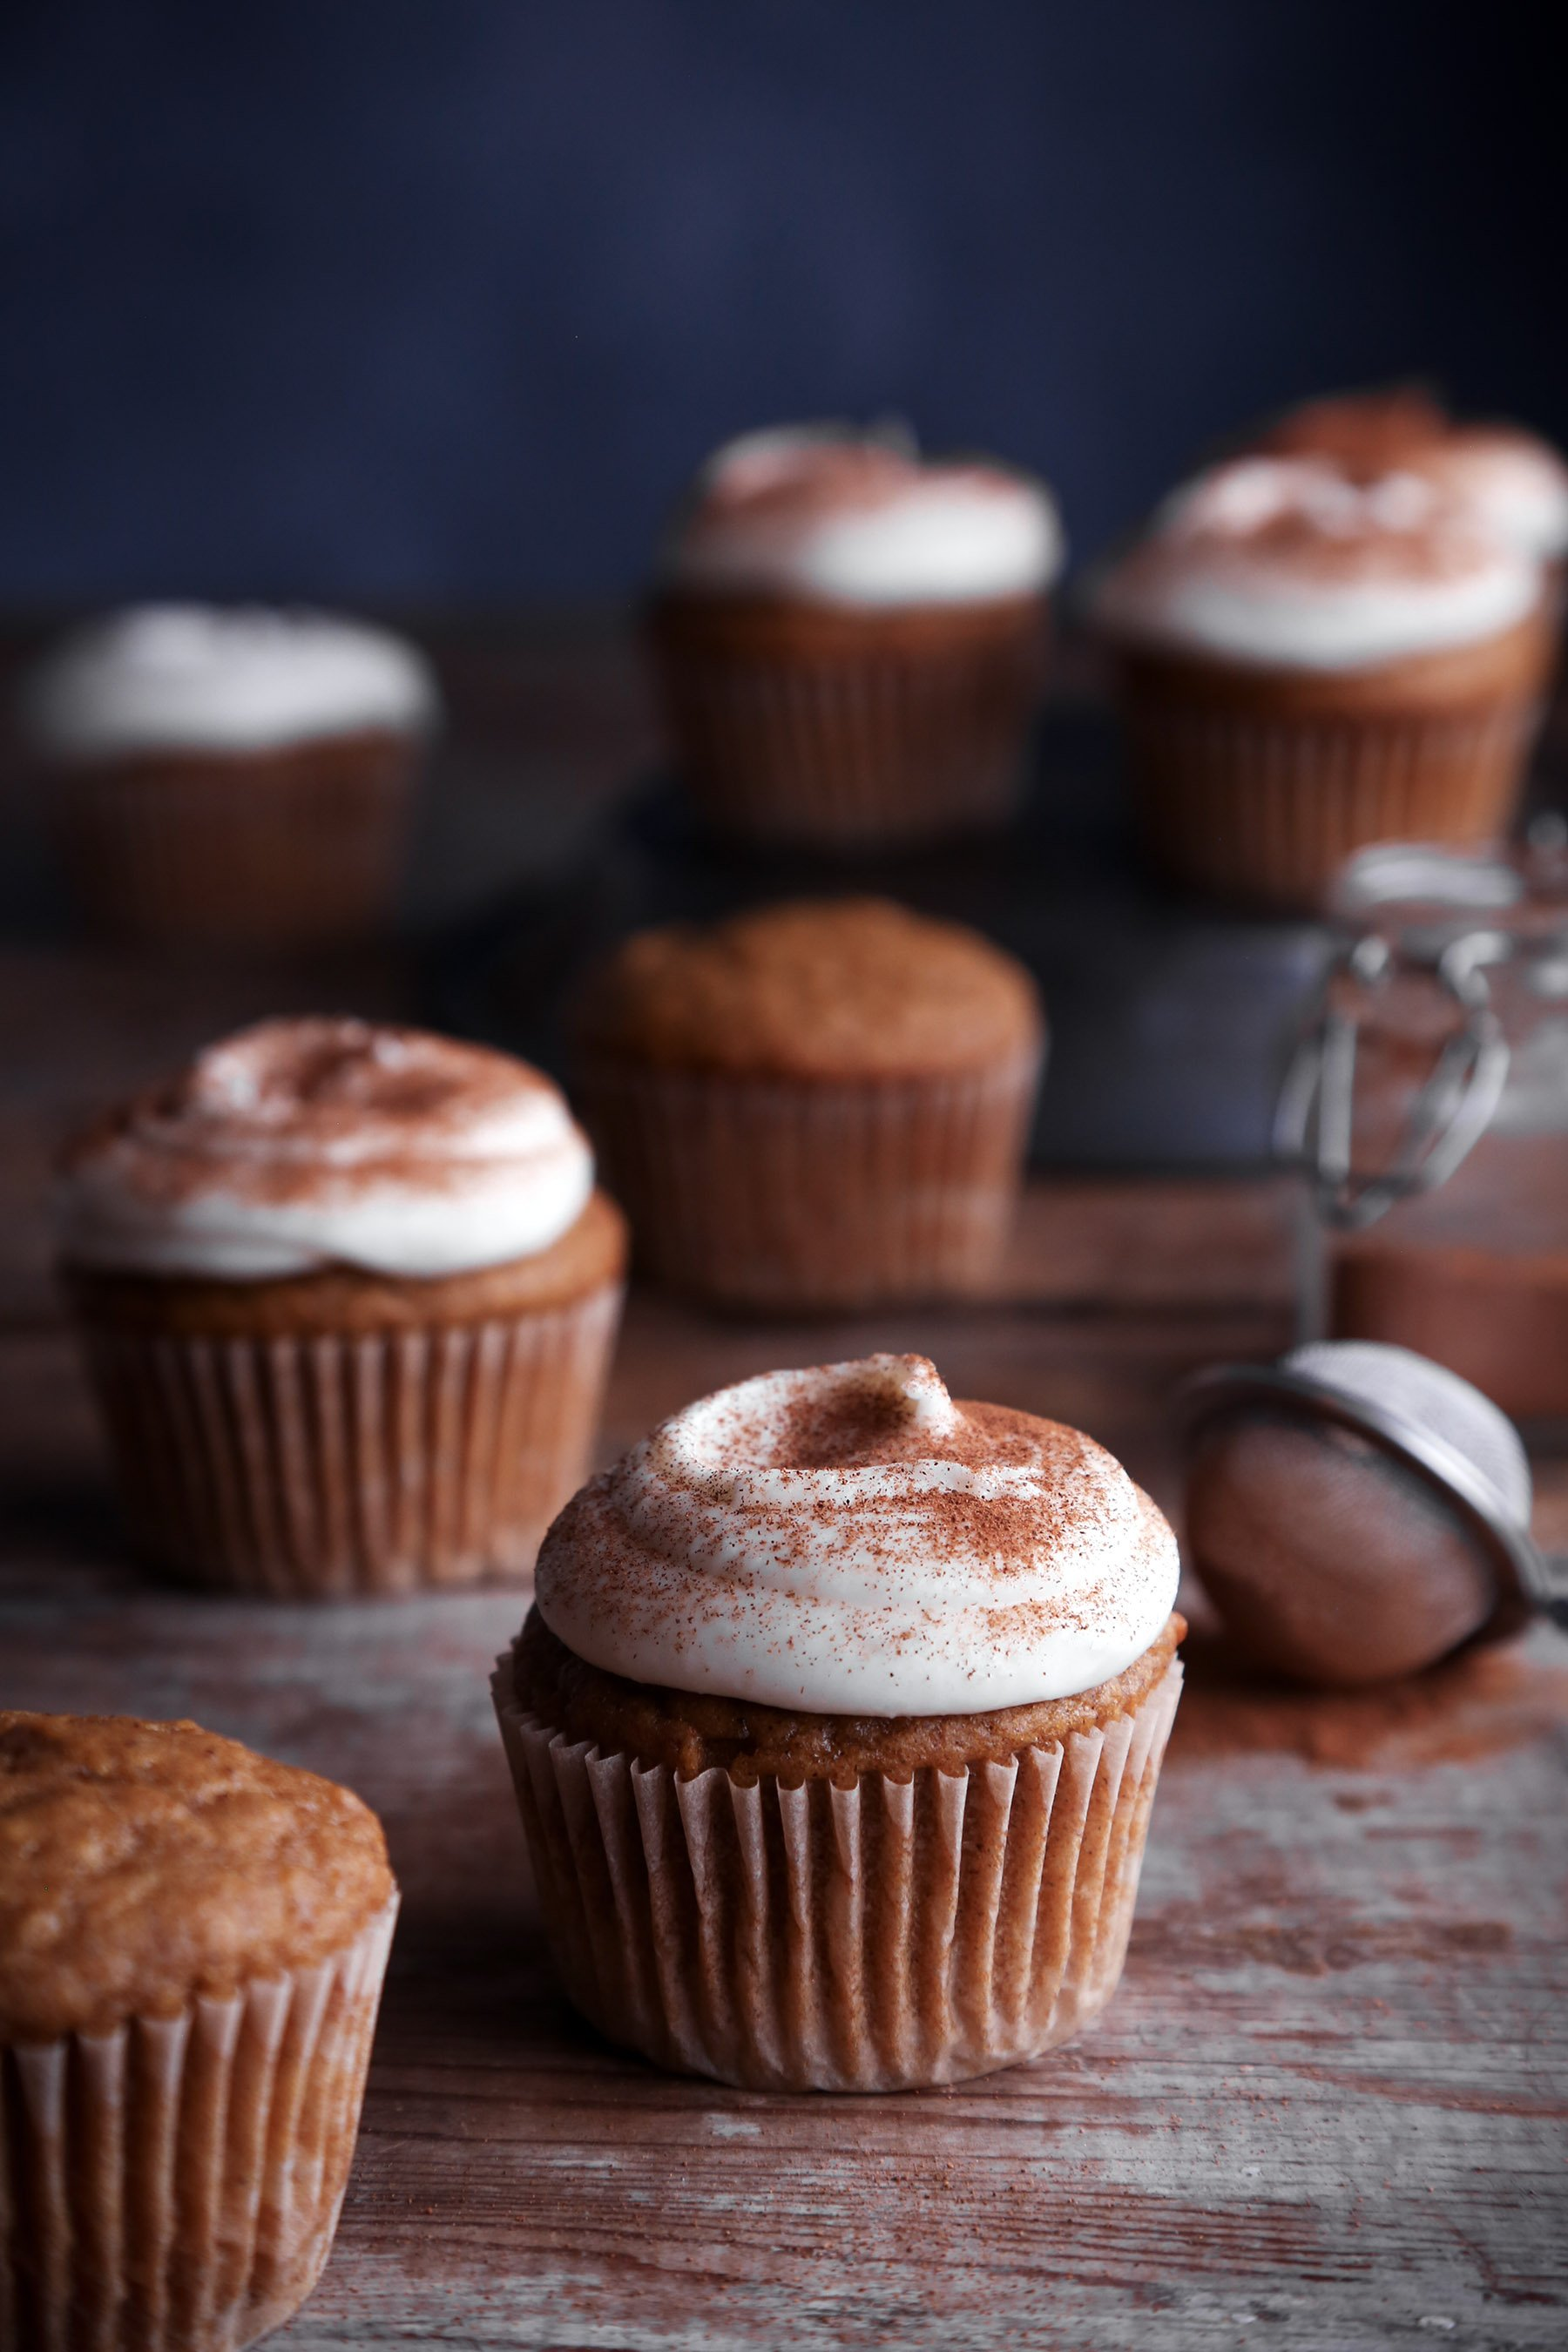 Pumpkin Cupcakes with Cream Cheese Frosting | Vegan Friendly with Gluten Free Alternative